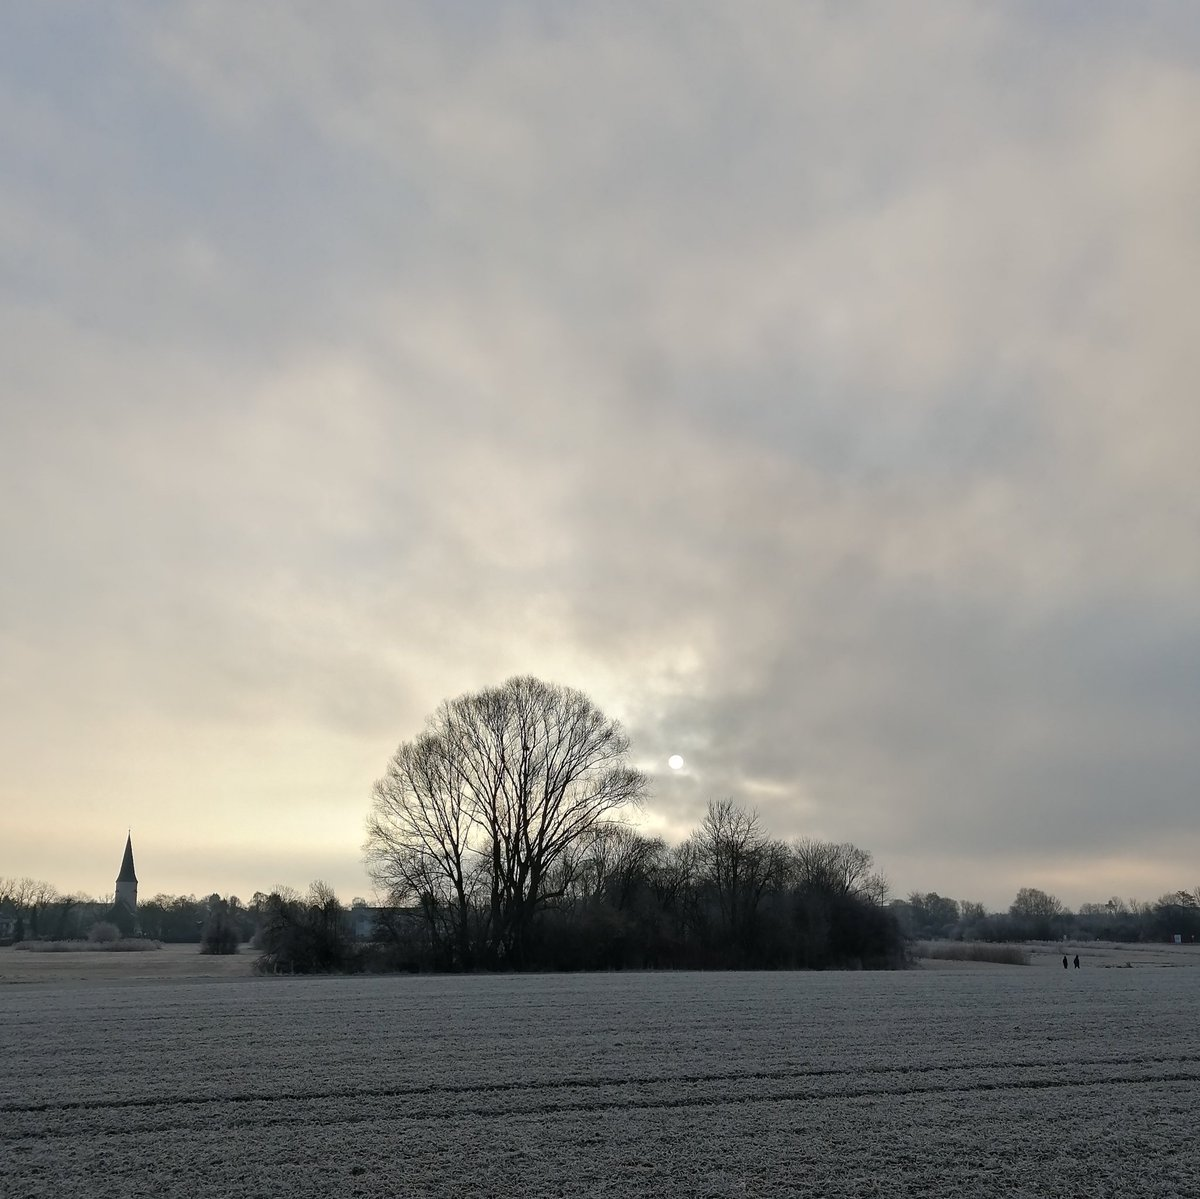 Morning in Bavaria [cold again] #NaturePhotography #nature #photography #photooftheday